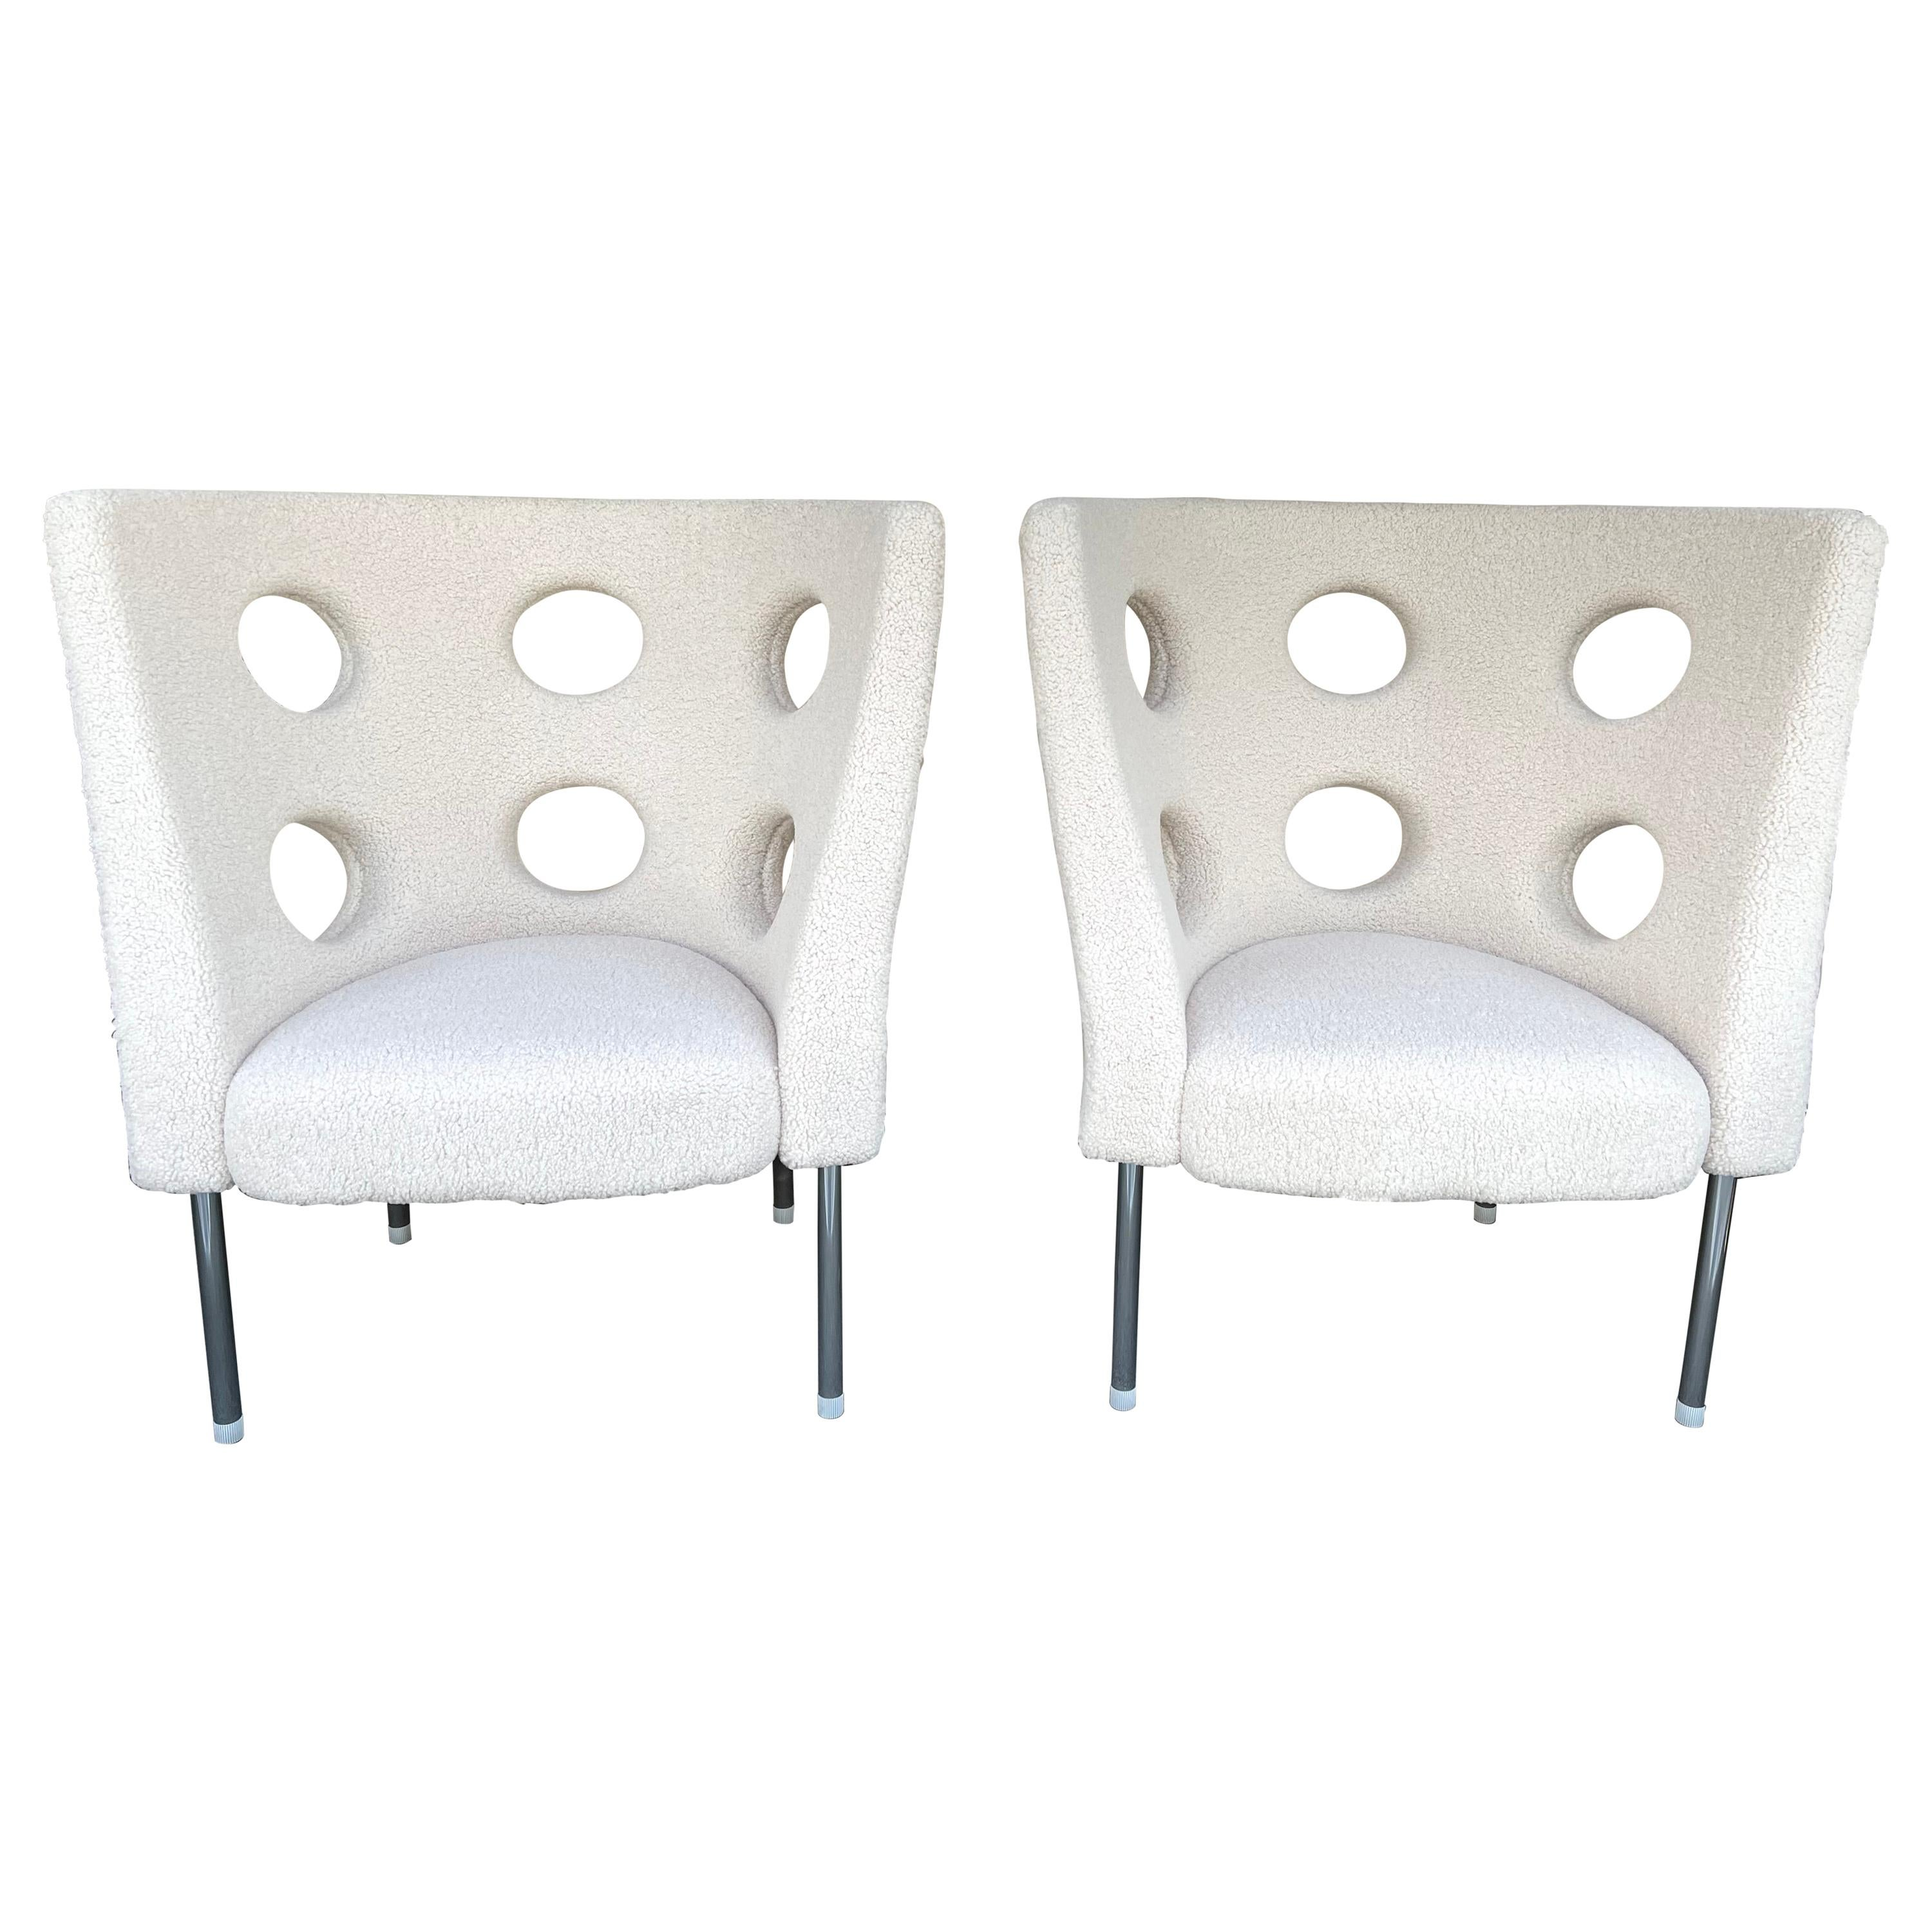 Contemporary Pair of Armchairs Bouclé Fabric by Paolo Rizzatto, Italy